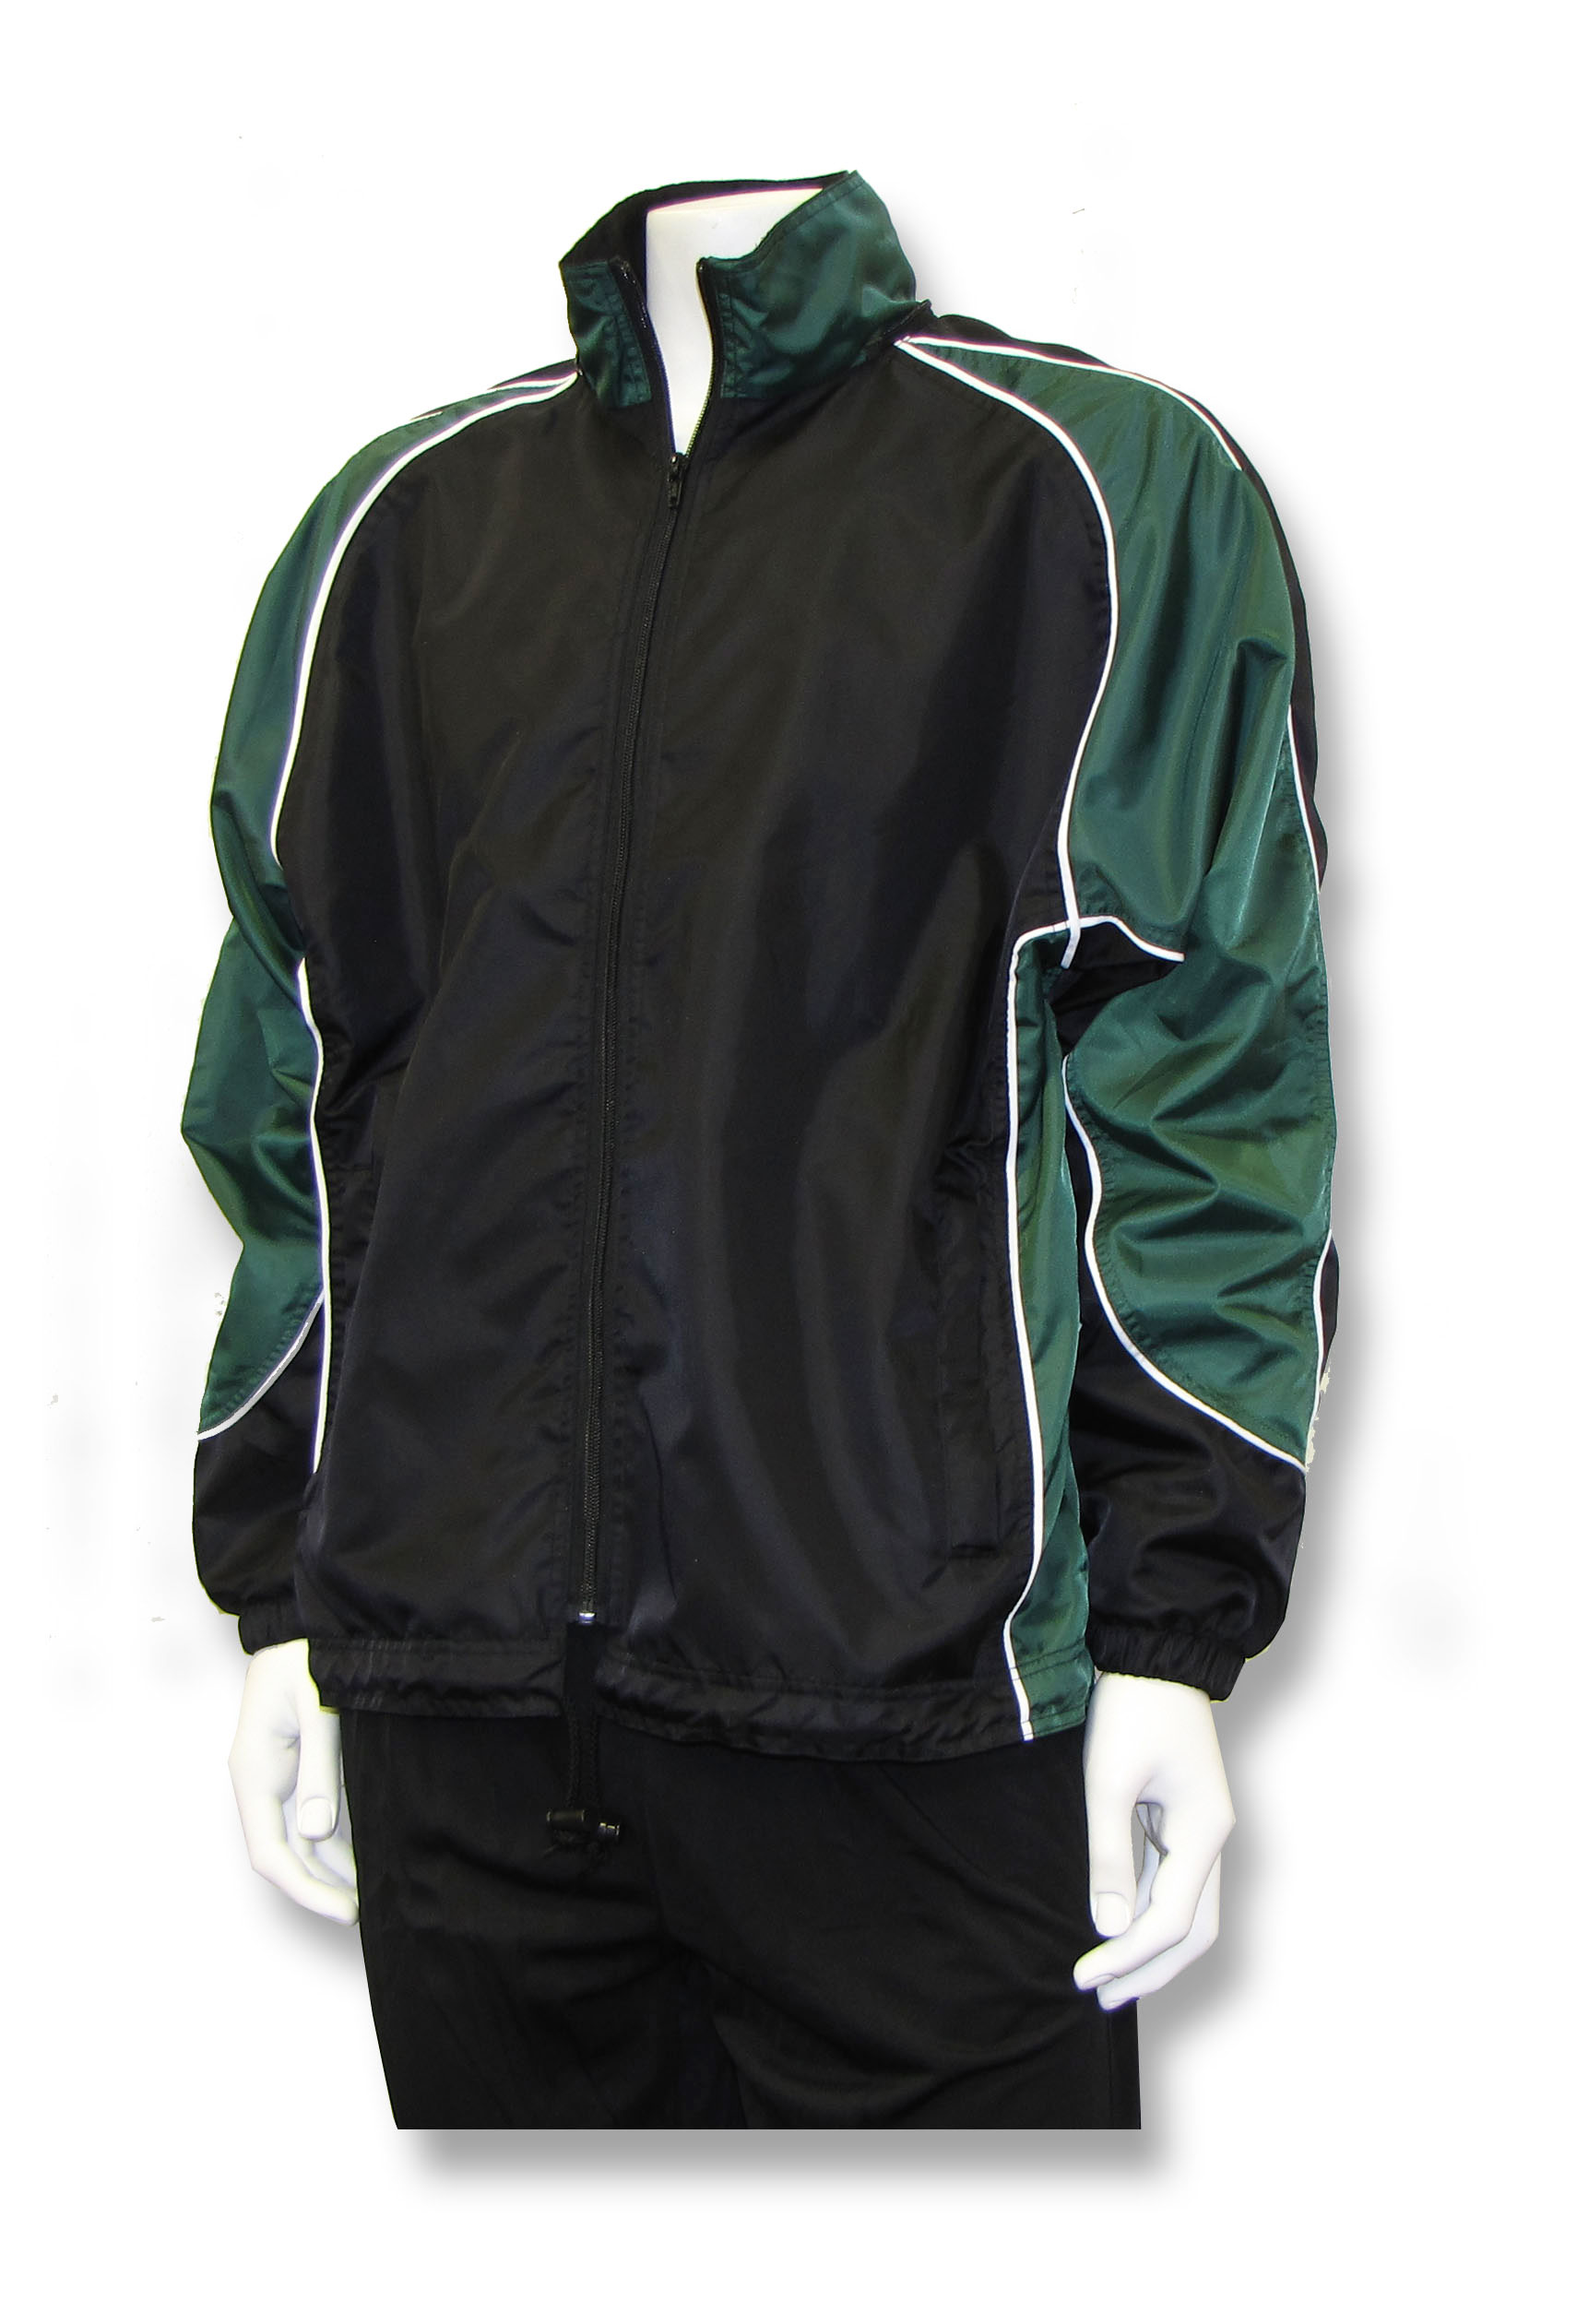 Viper soccer rain jacket in black/forest by Code Four Athletics